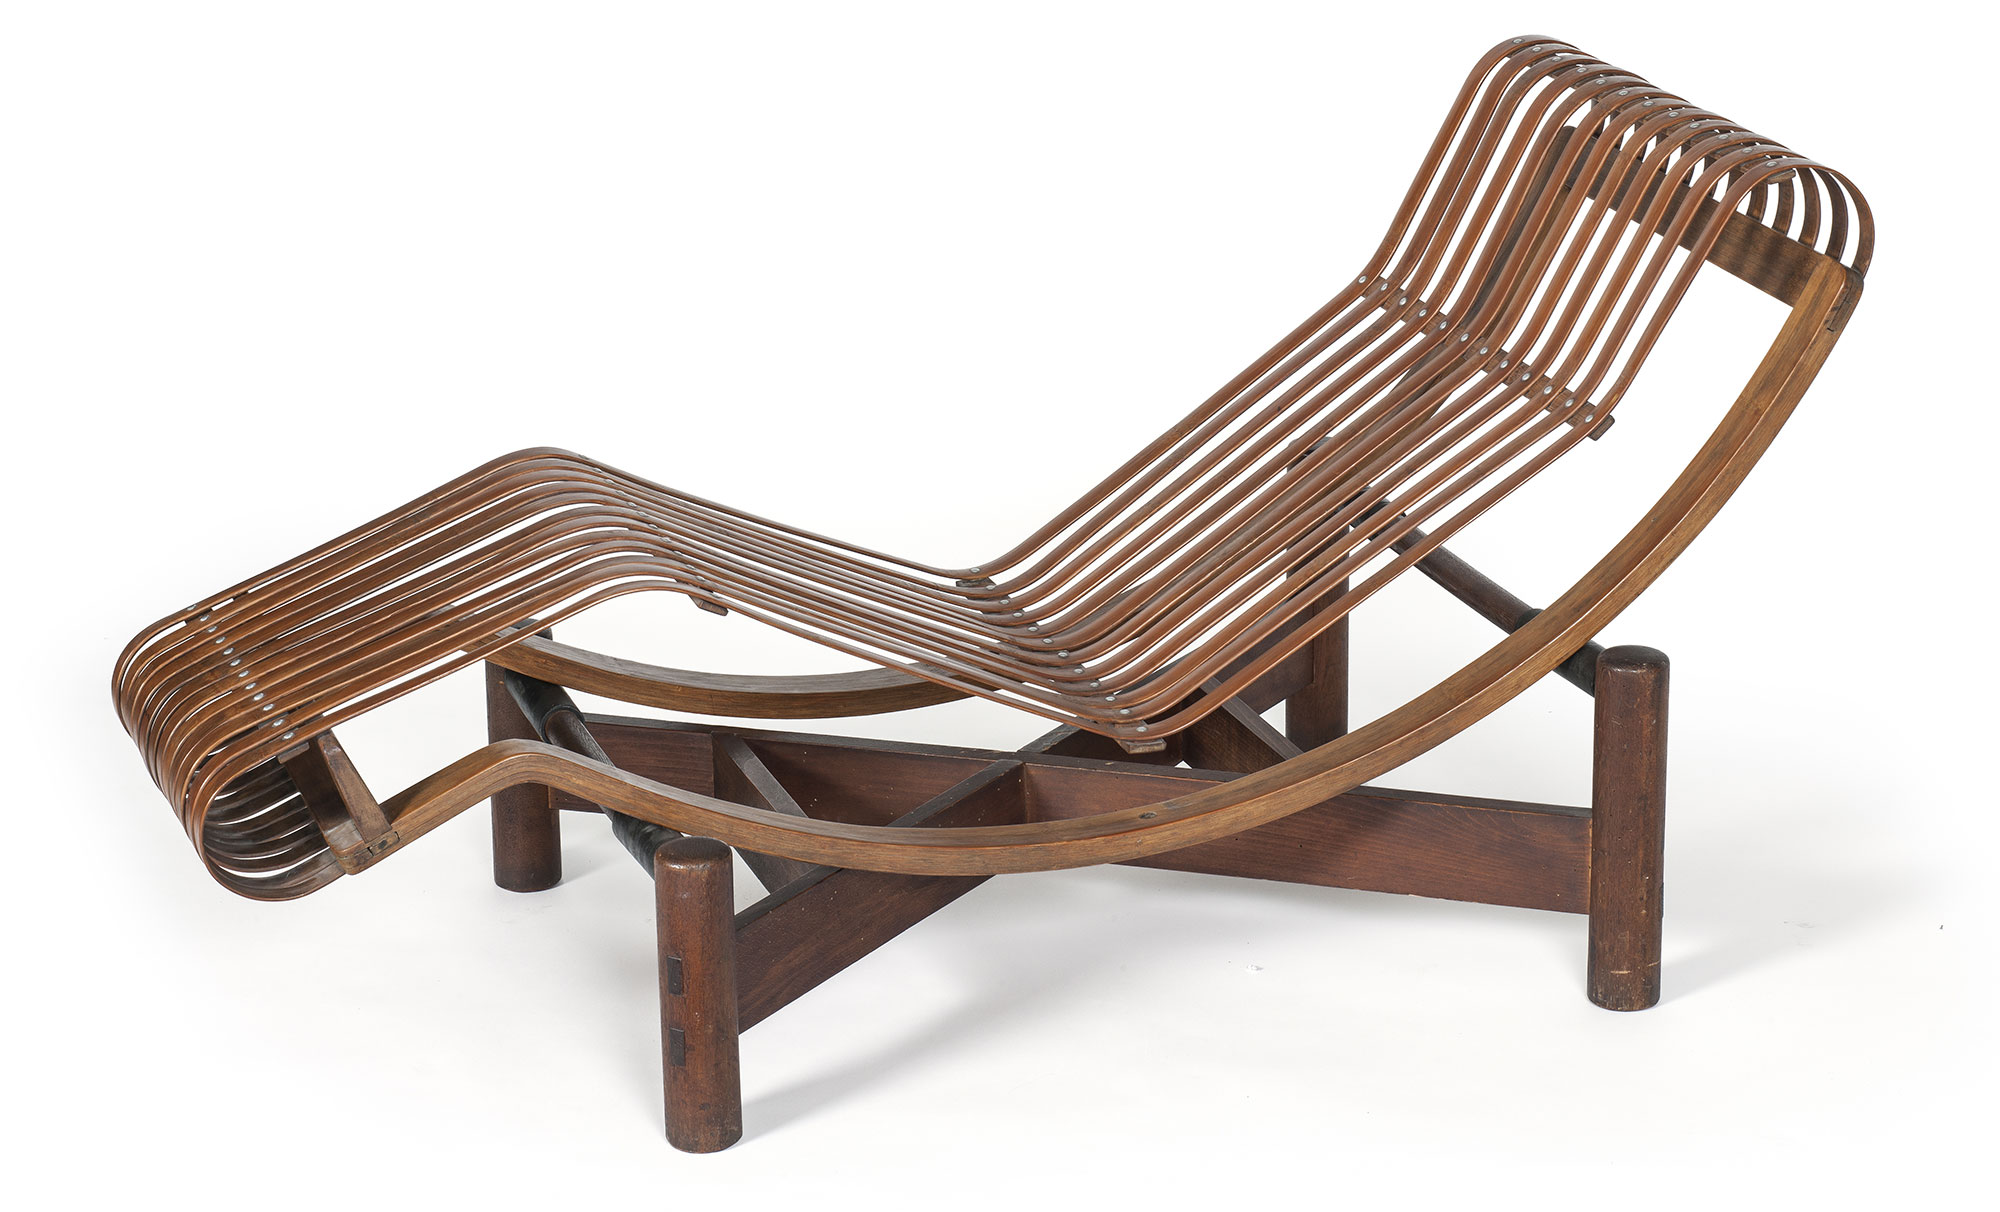 Chaise longue basculante / Charlotte Perriand